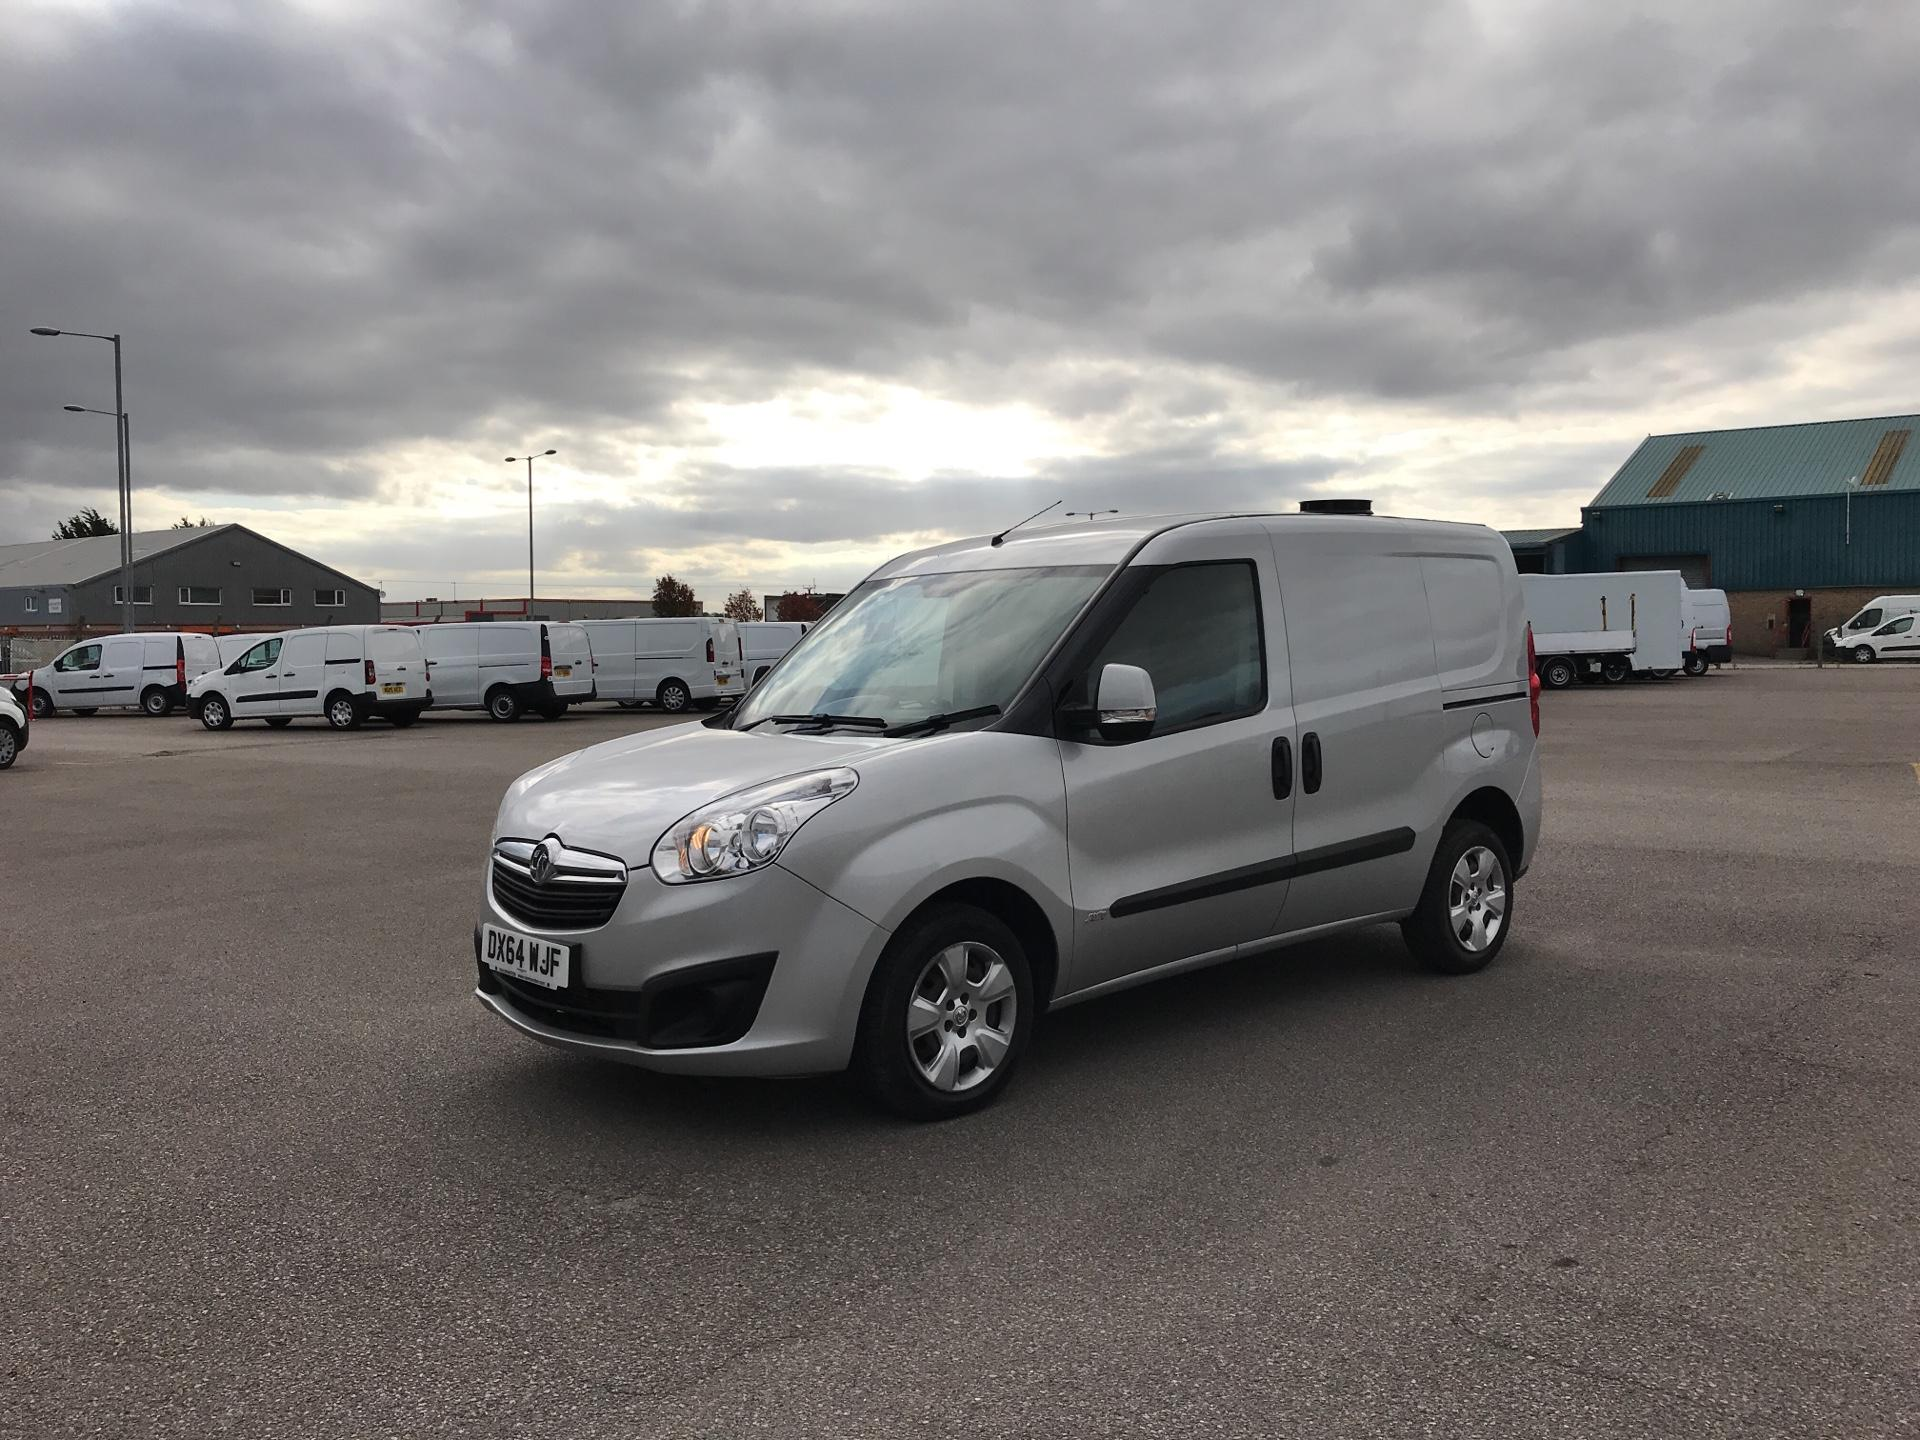 2014 Vauxhall Combo  L1 H1 2000 1.3 16V SPORTIVE EURO 5 AIR CON (DX64WJF) Image 7